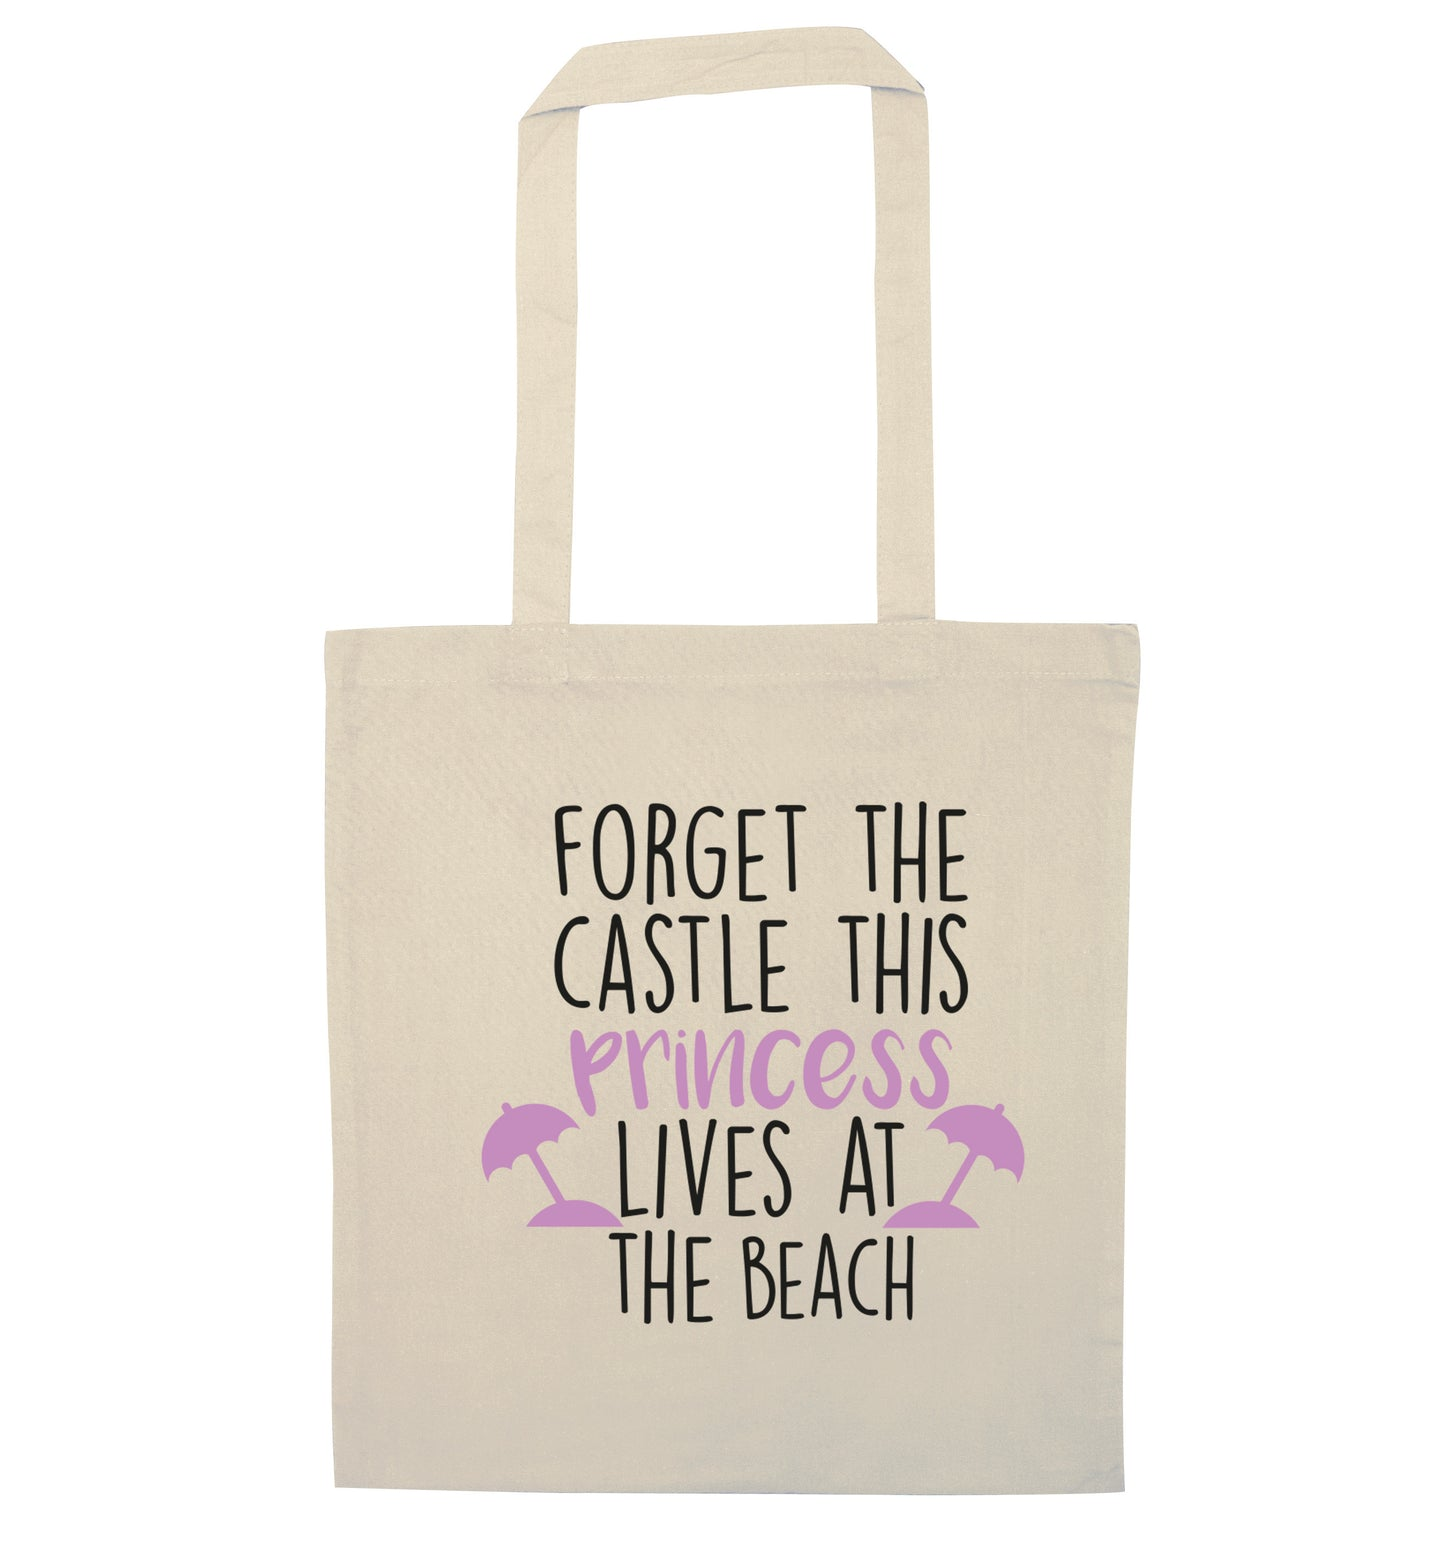 Forget the castle this princess lives at the beach natural tote bag